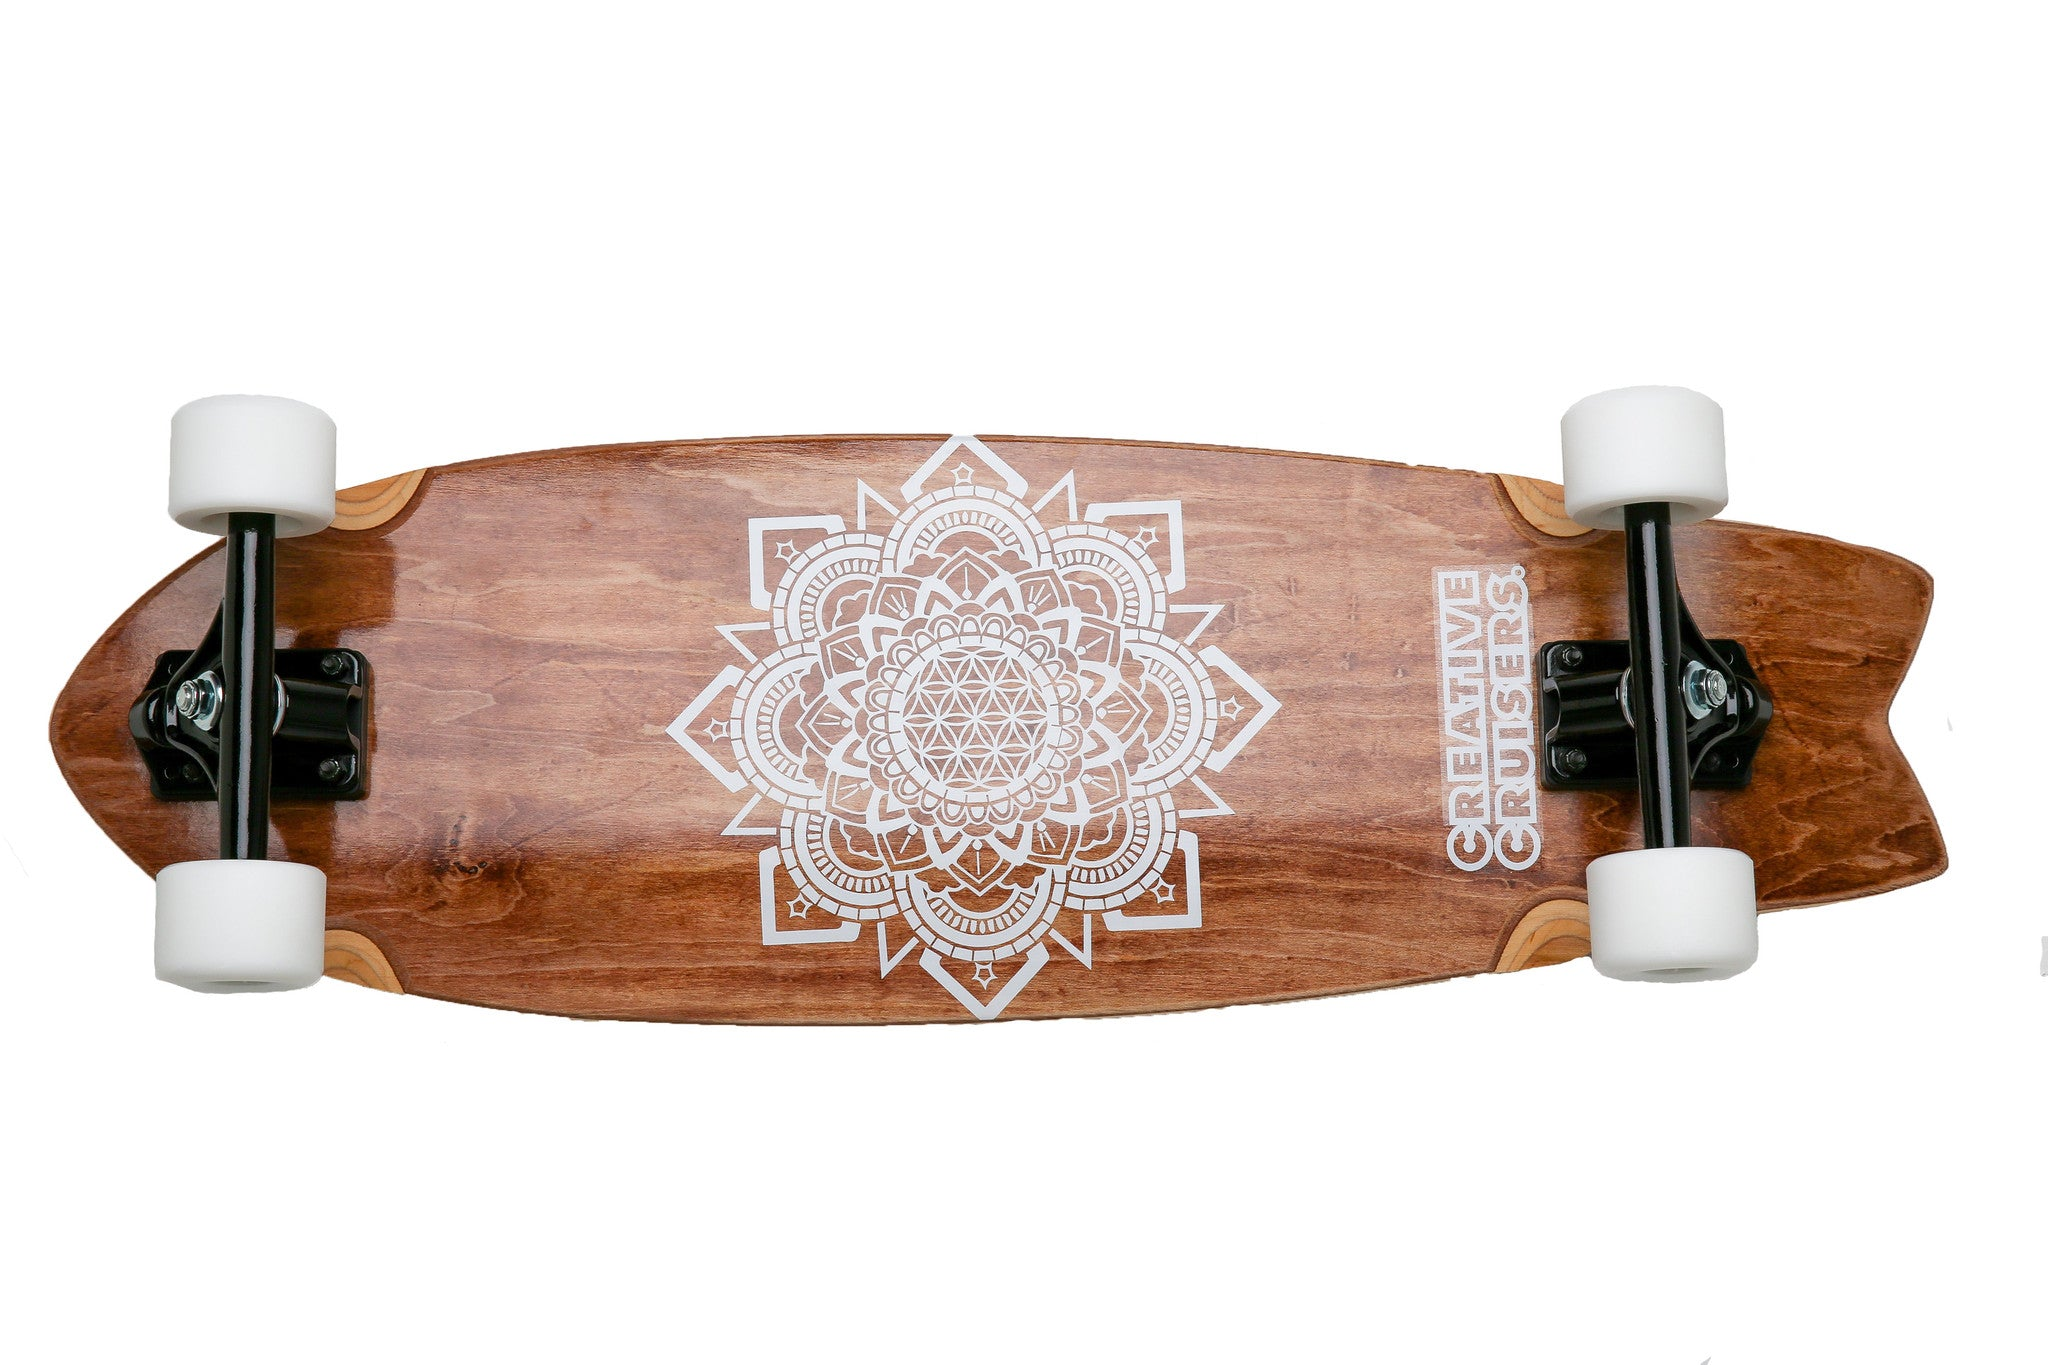 "The Classic Cruiser - 30""x9.5"" + Free Mini Deck"